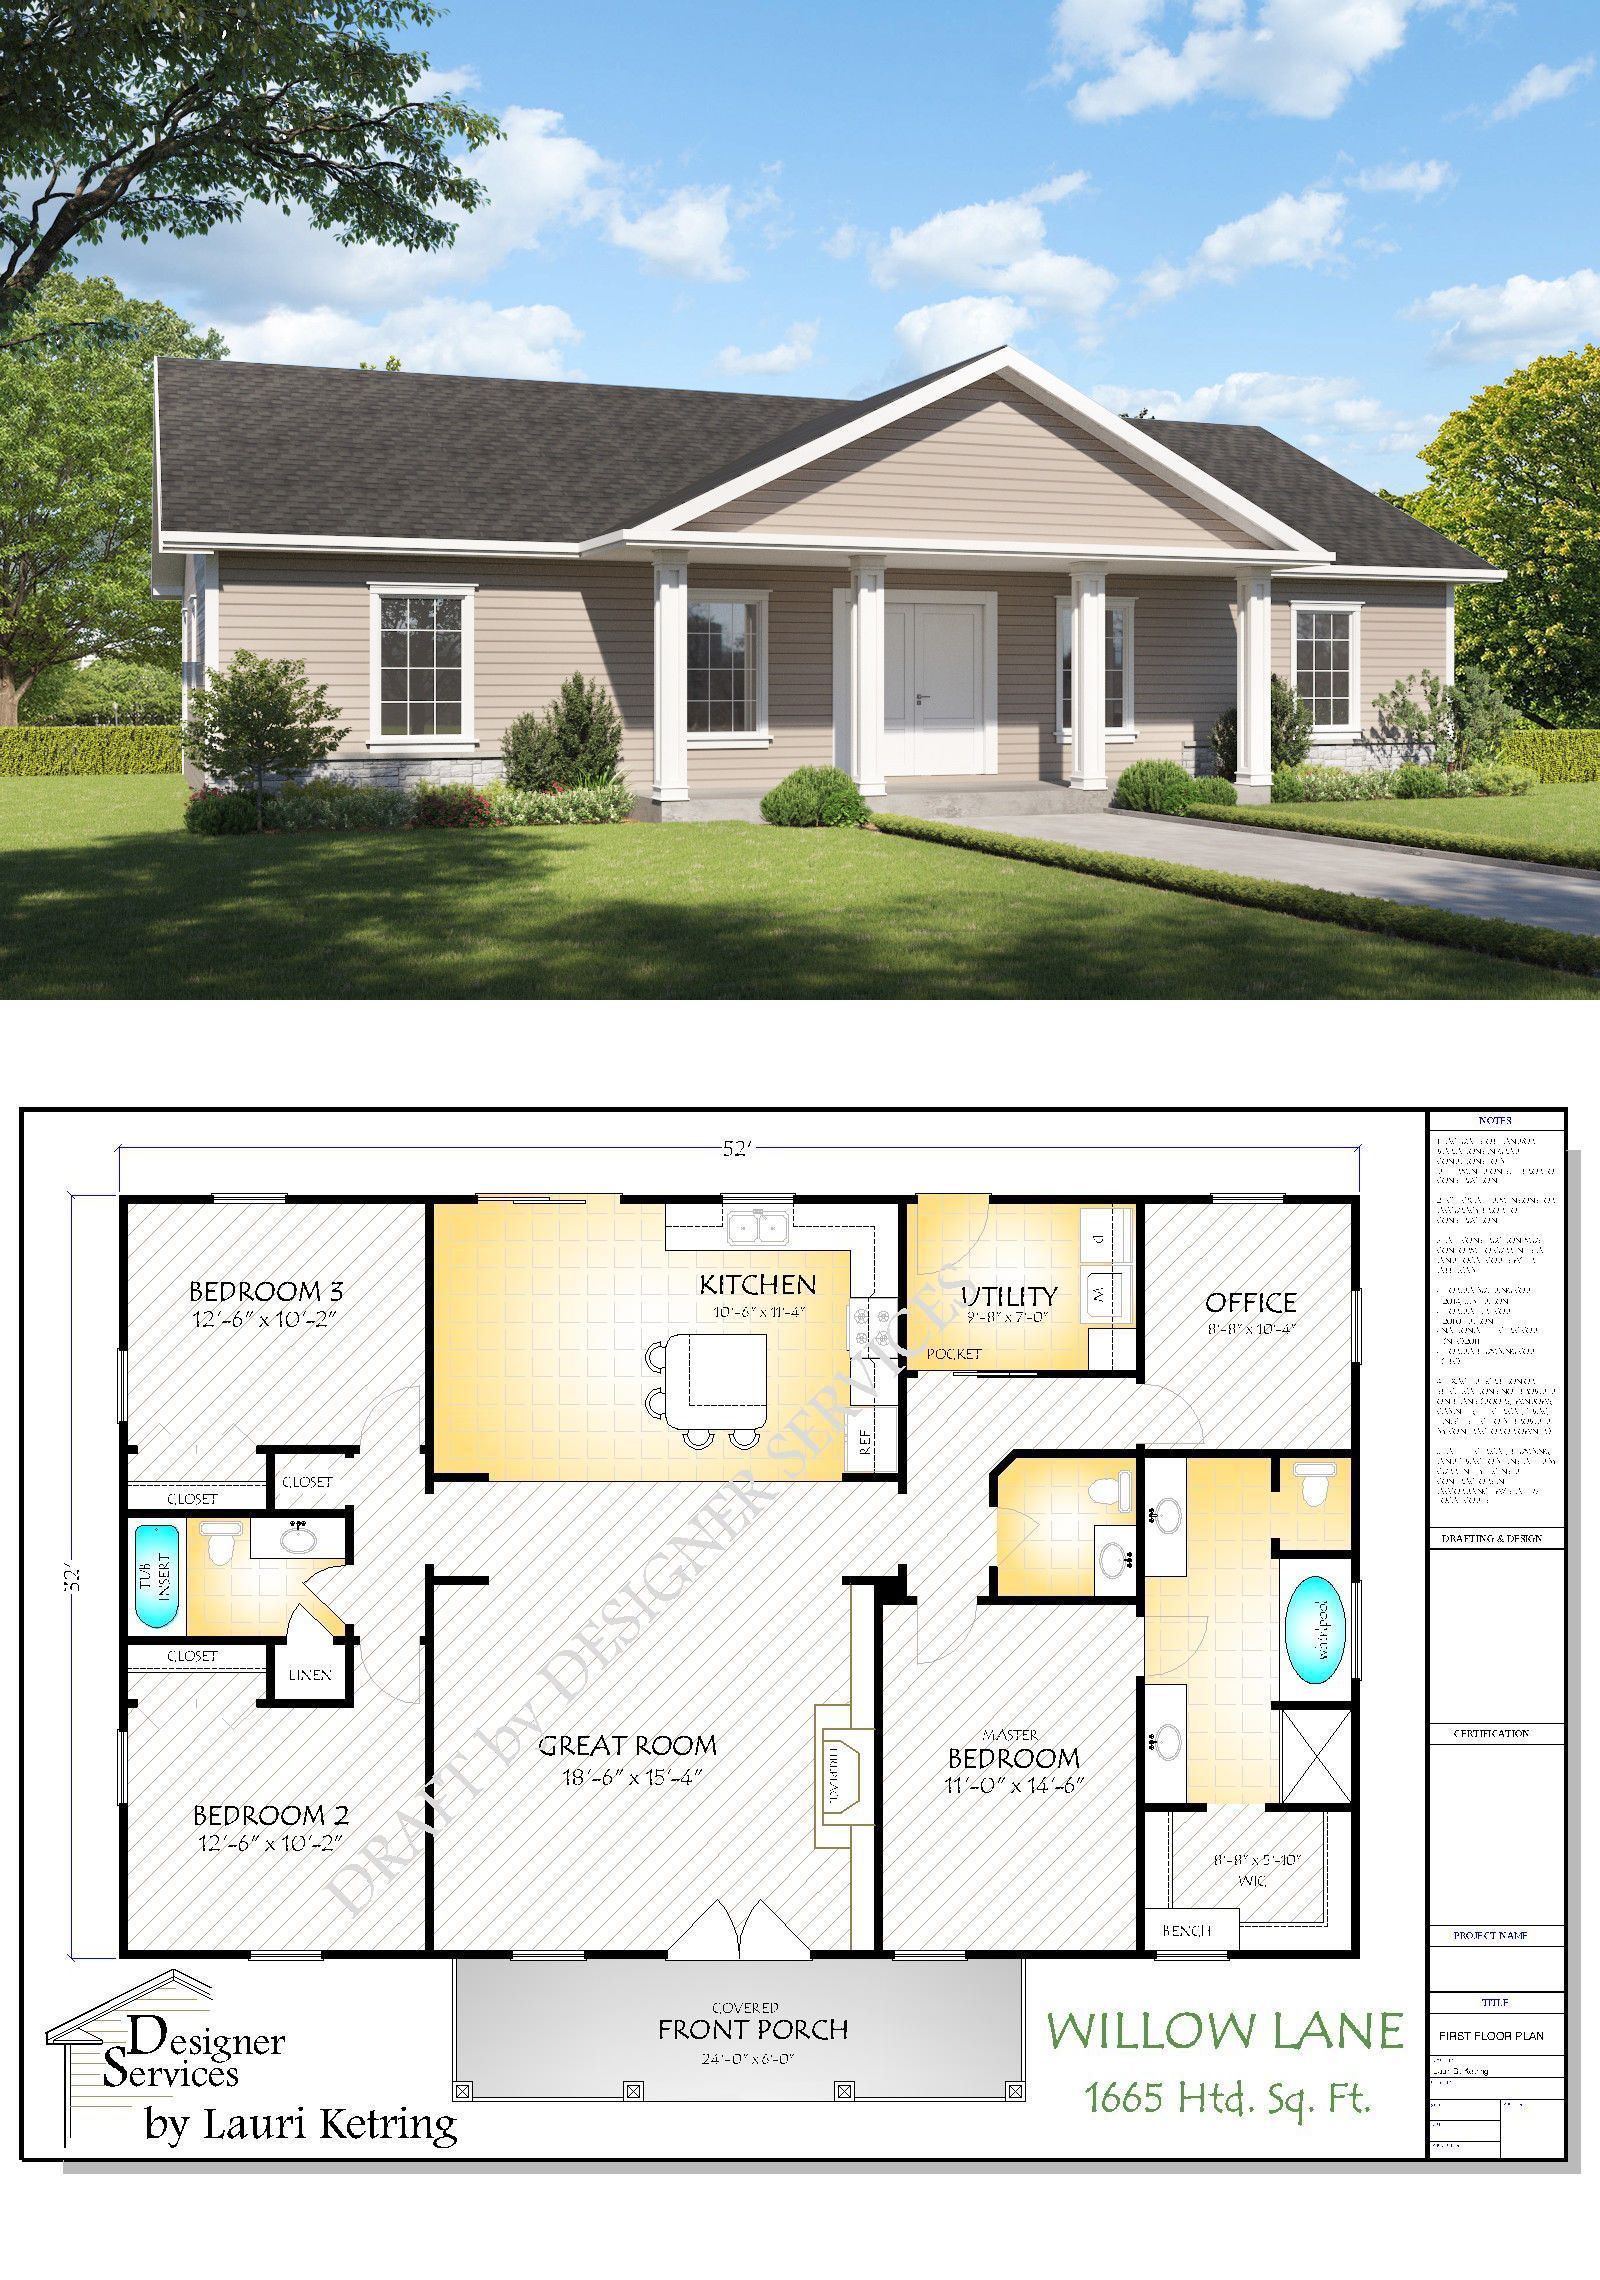 Building Plans And Blueprints 42130 The Willow Lane House Plan Buy It Now Only 75 On Ebay Buildi Building A House Small House Remodel Dream House Plans